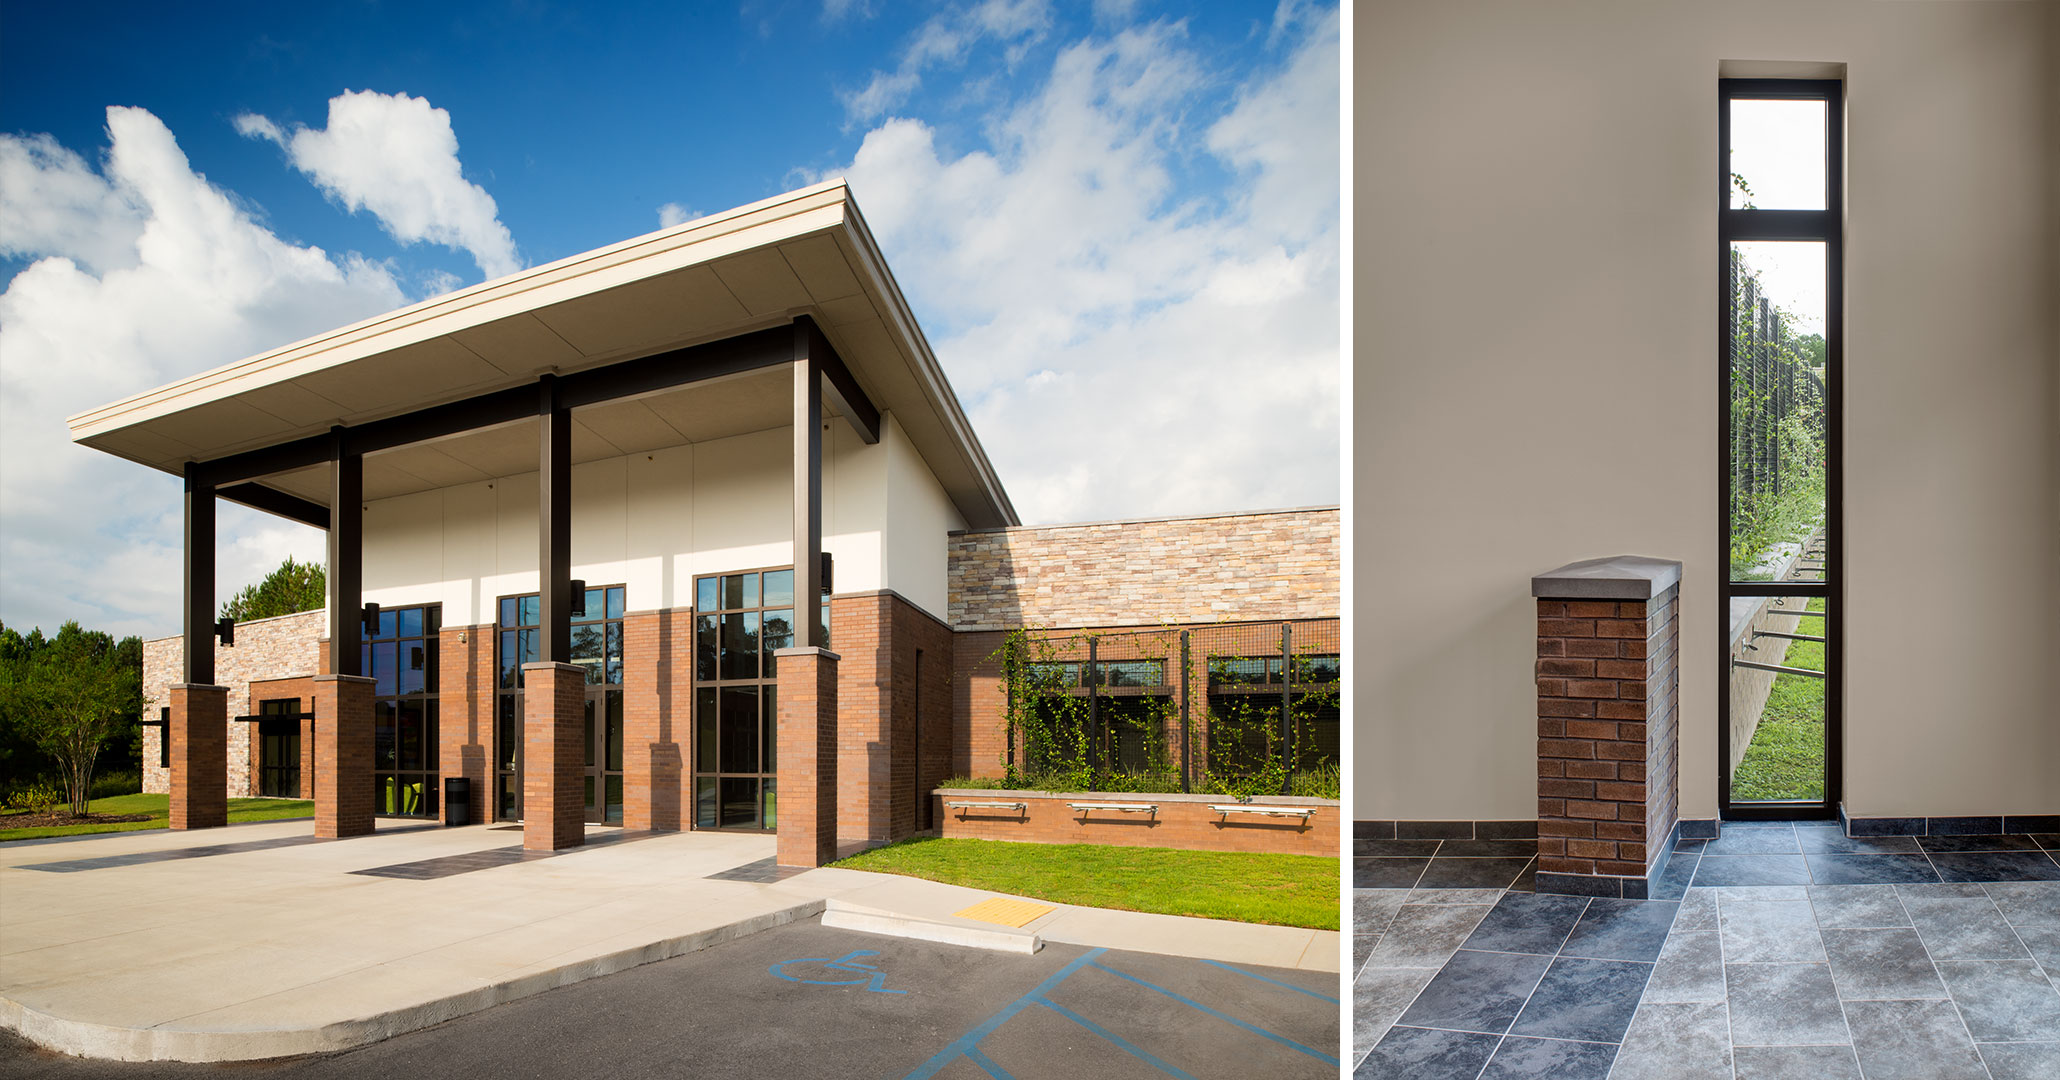 Boudreaux architects worked with the Richland County Recreation Commission to design the interiors and make the exterior look more modern at the RCRC Headquarters.